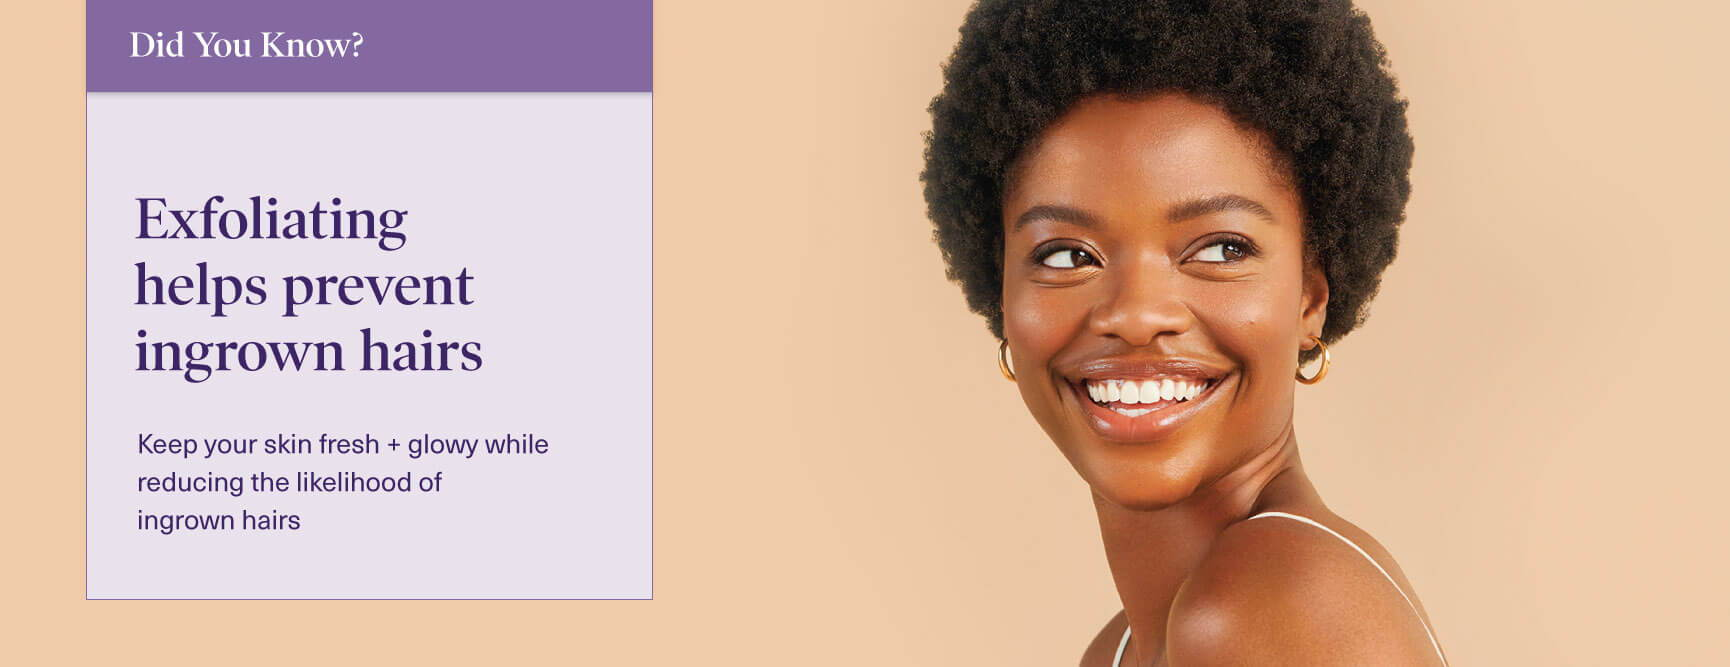 Women smiling with wax fact stating to only wax healthy skin